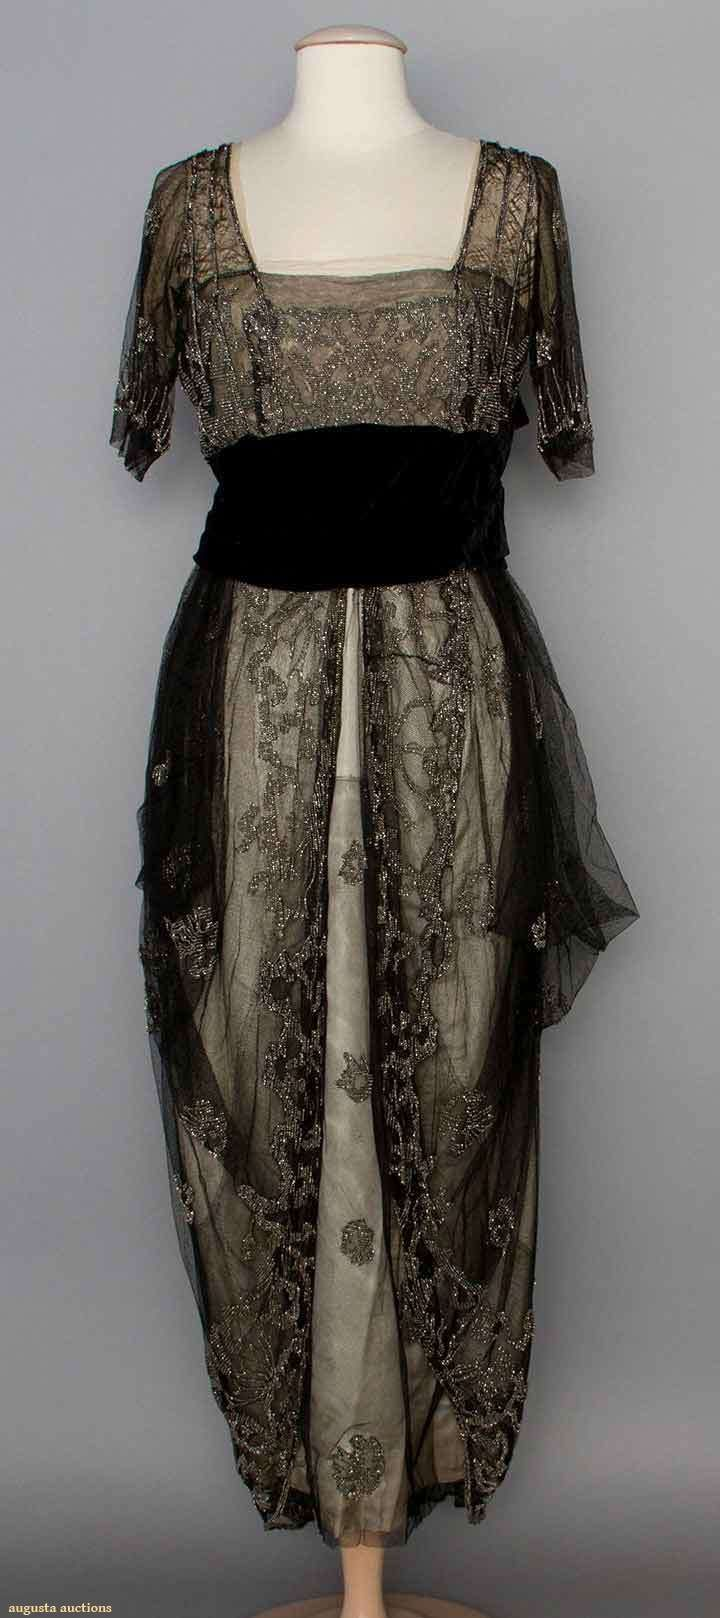 Beaded Evening Gown, 1911-1912, but I believe the date is later- more 1913-1914